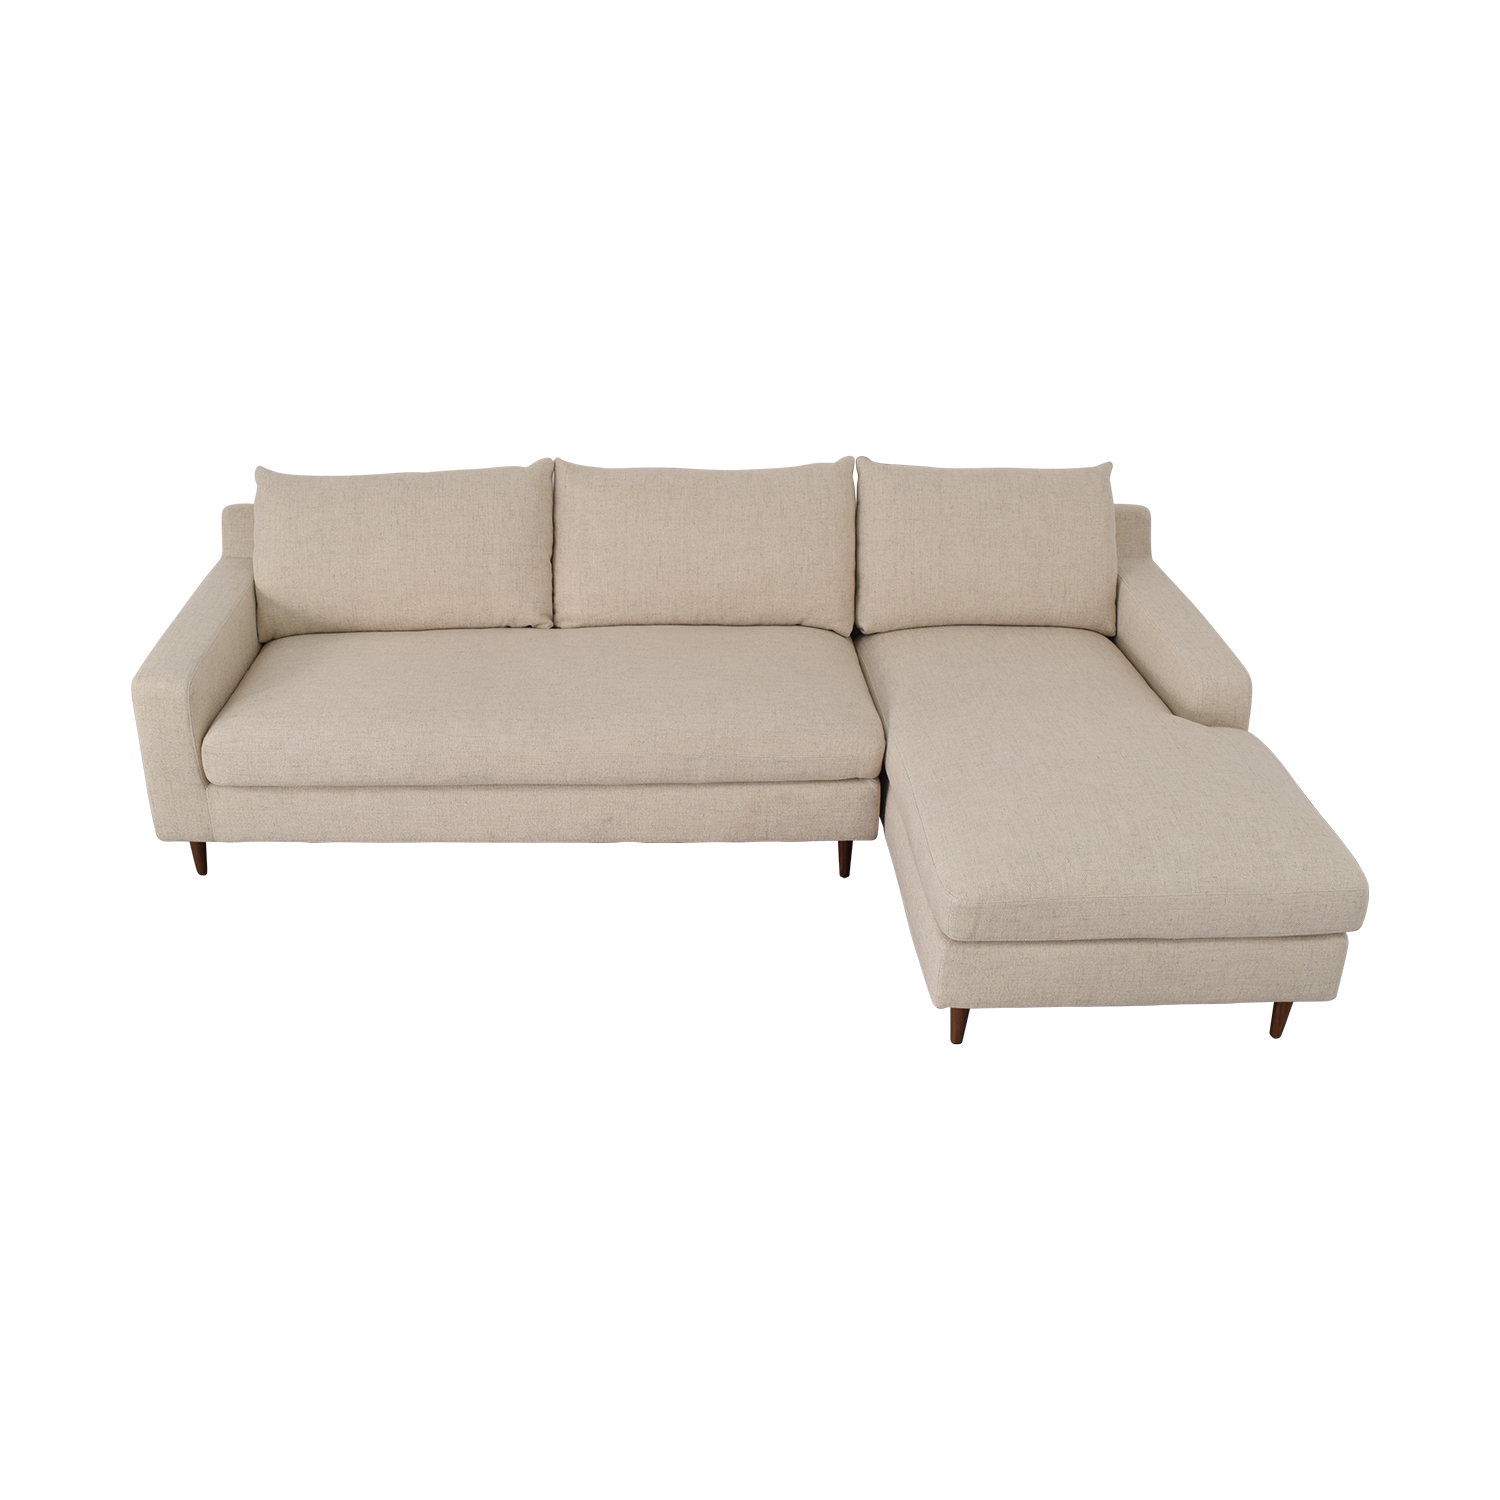 Interior Define Sloan Beige Right Arm Chaise Sectional Beige